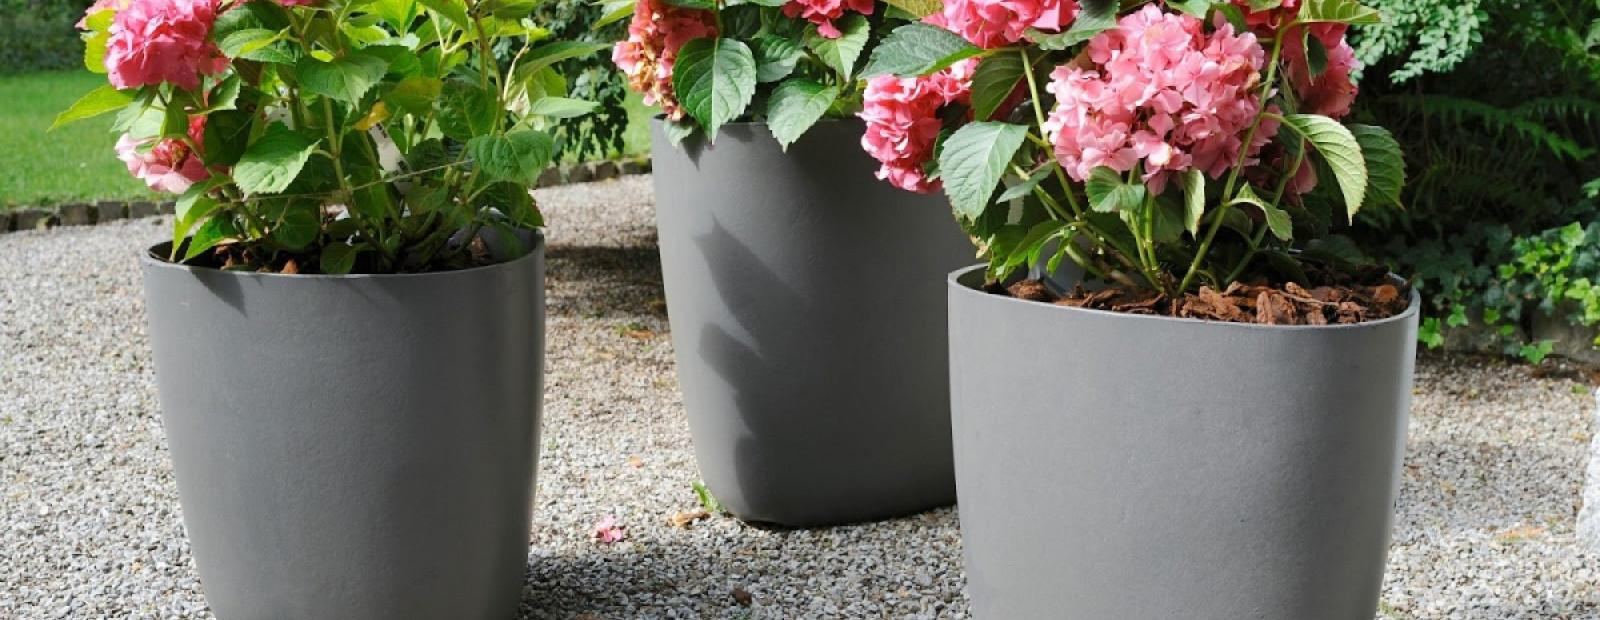 Patio Planters Plant Ideas Love Garden Outside Flower